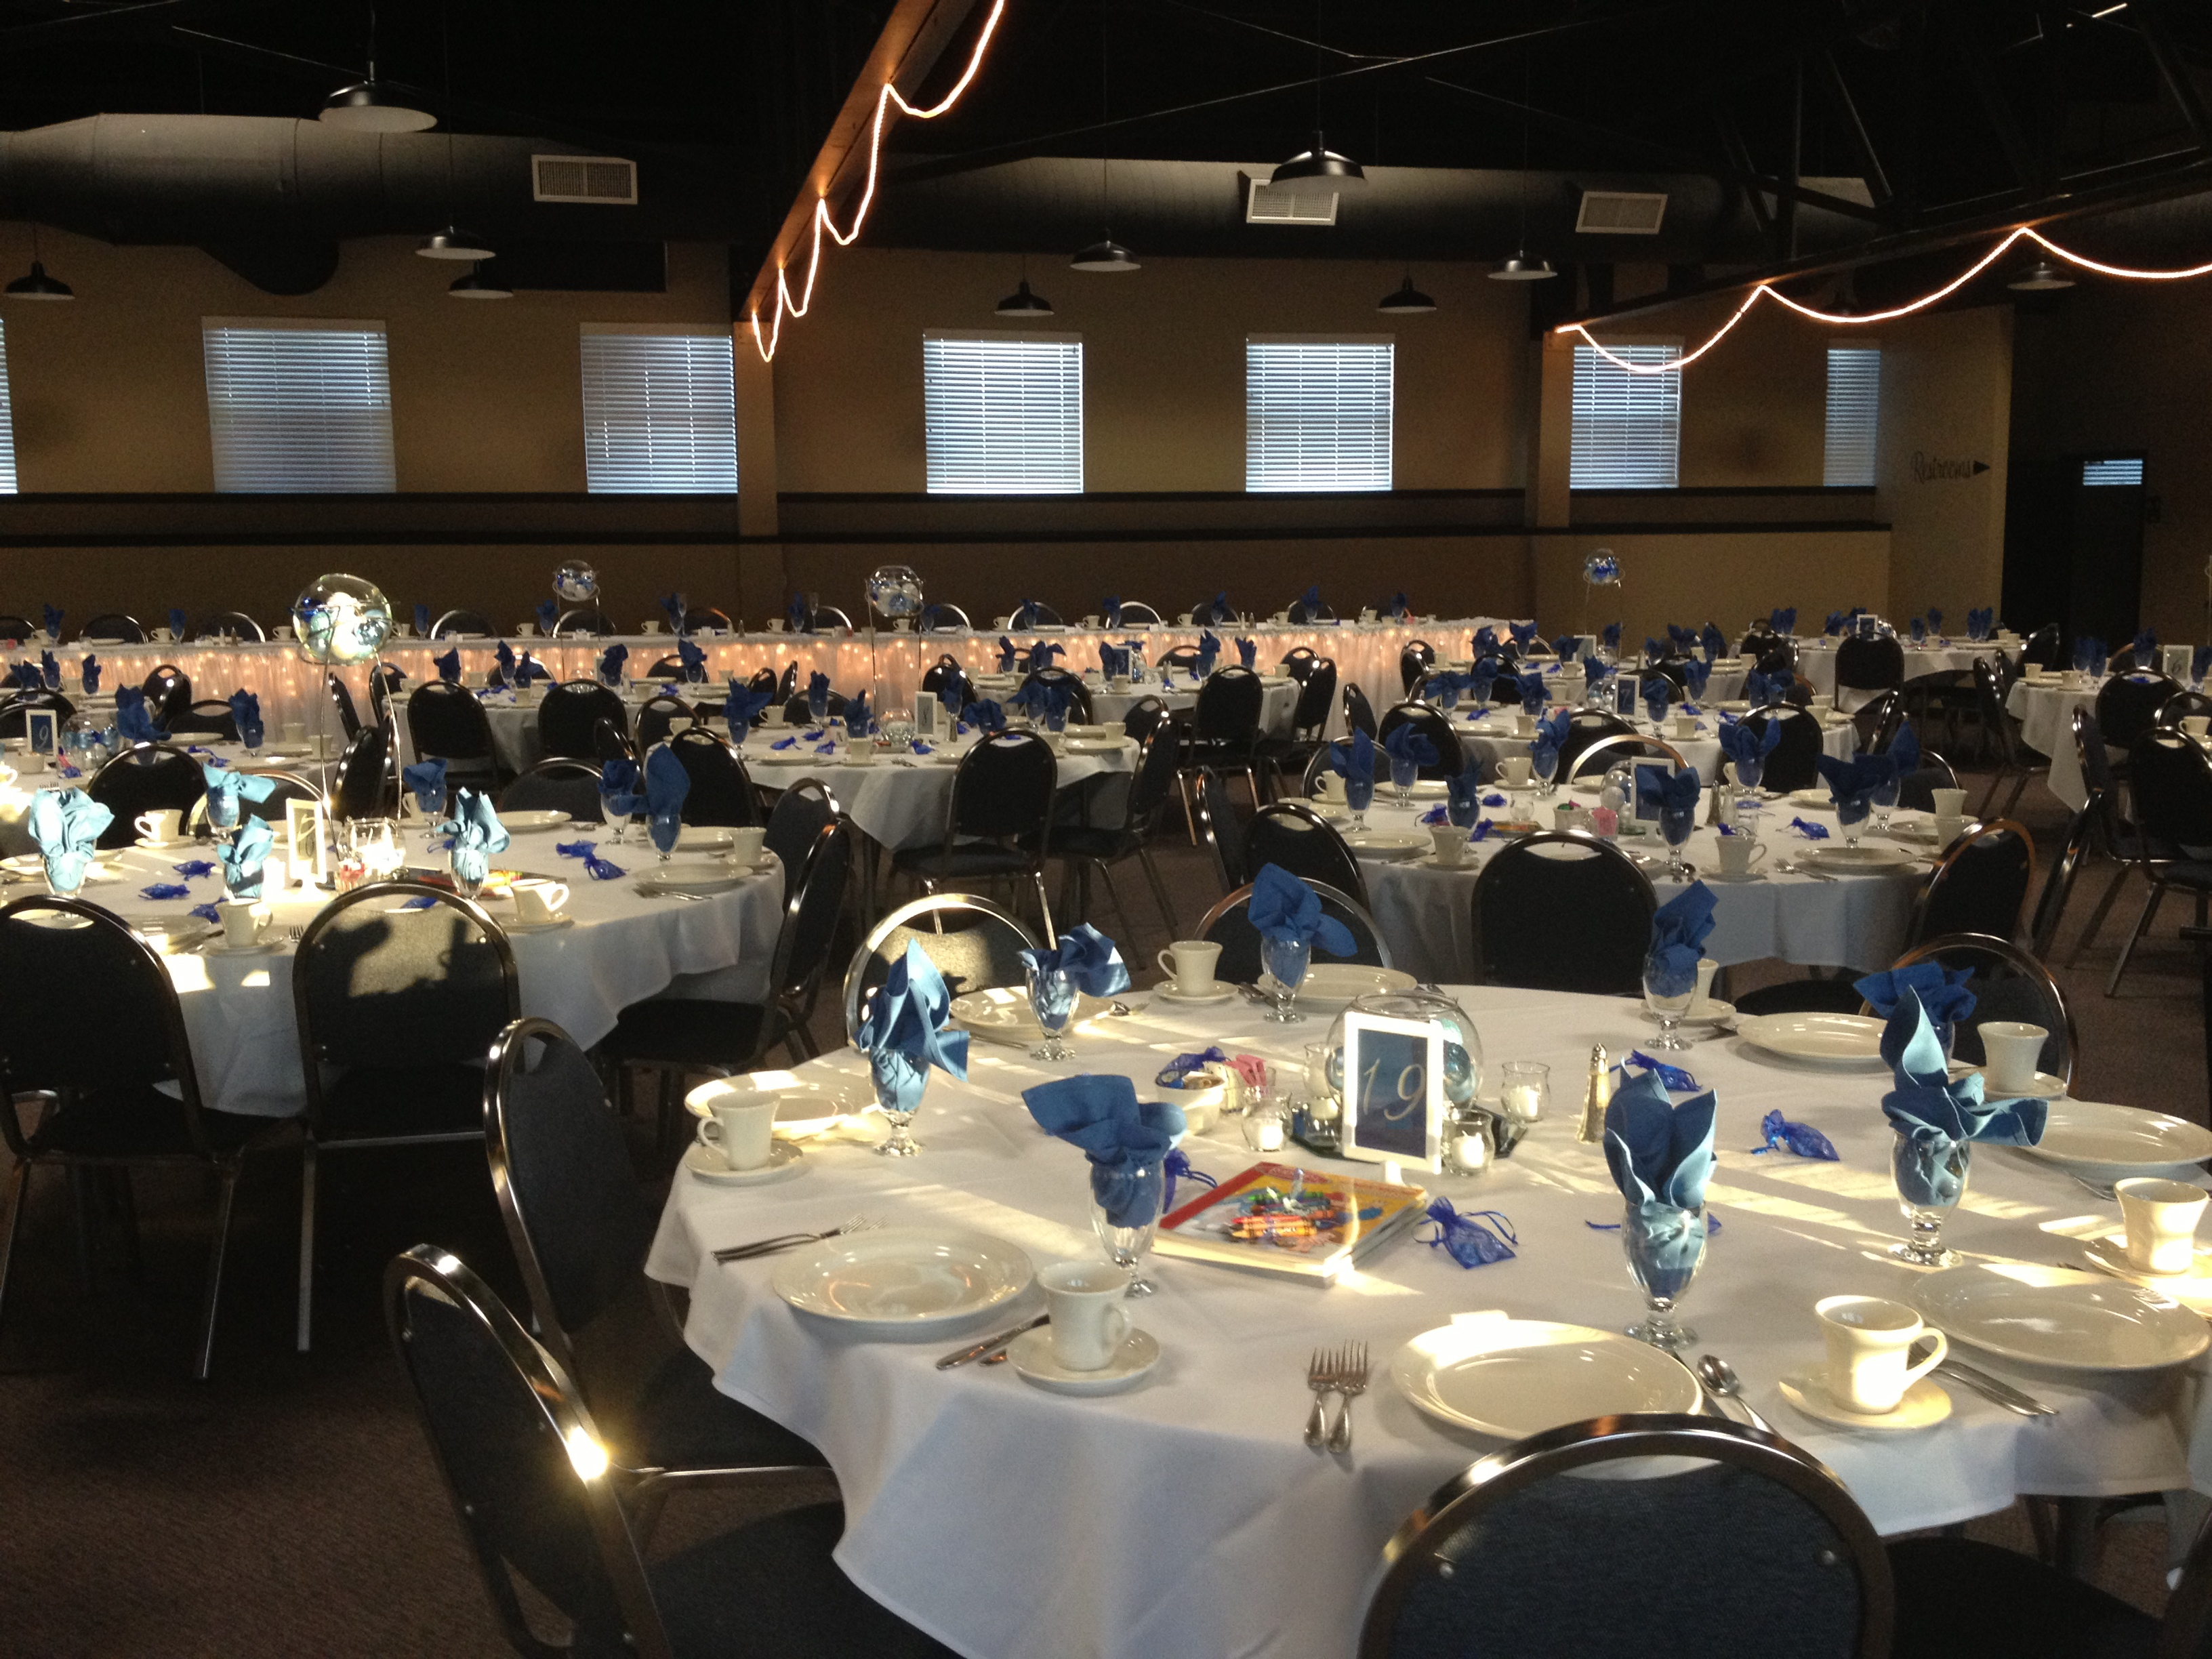 The Grandville Banquet Center